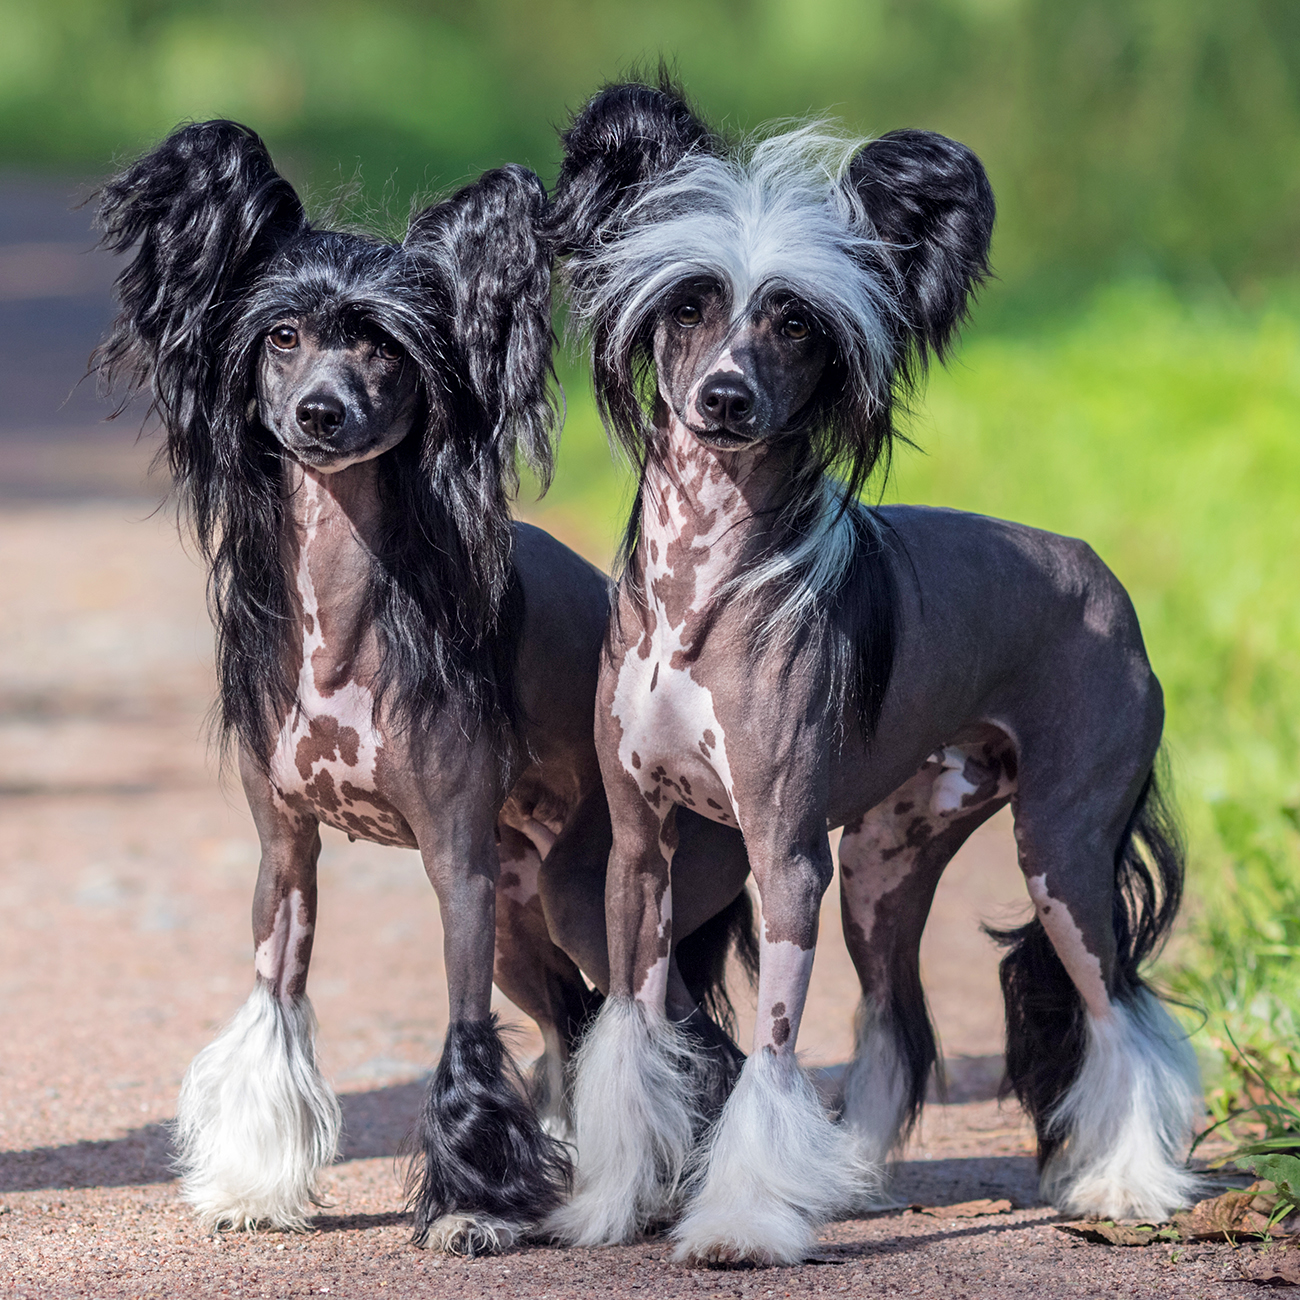 Two Chinese Crested dogs stand next to each other outdoors